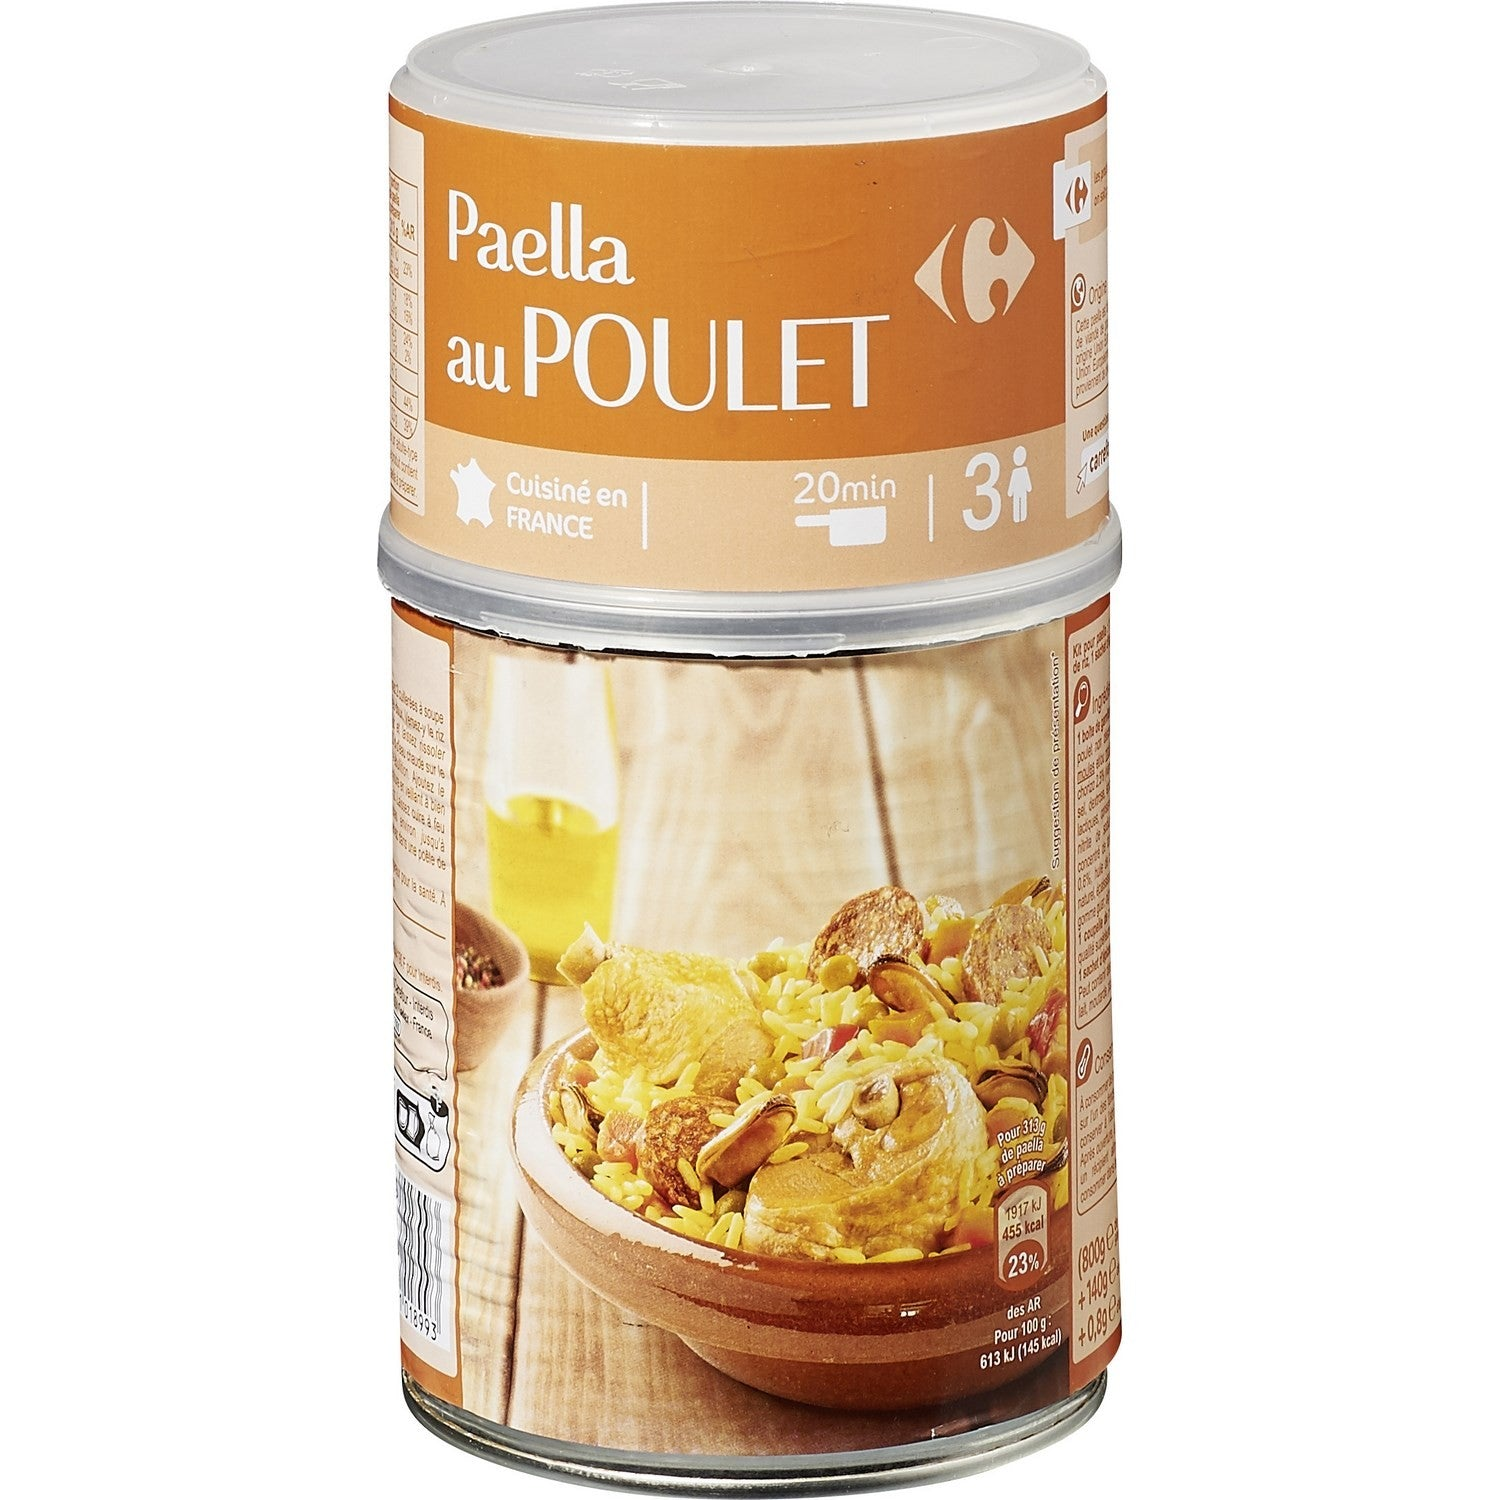 stm>Paella, Carrefour, 3 pers 940gr, can